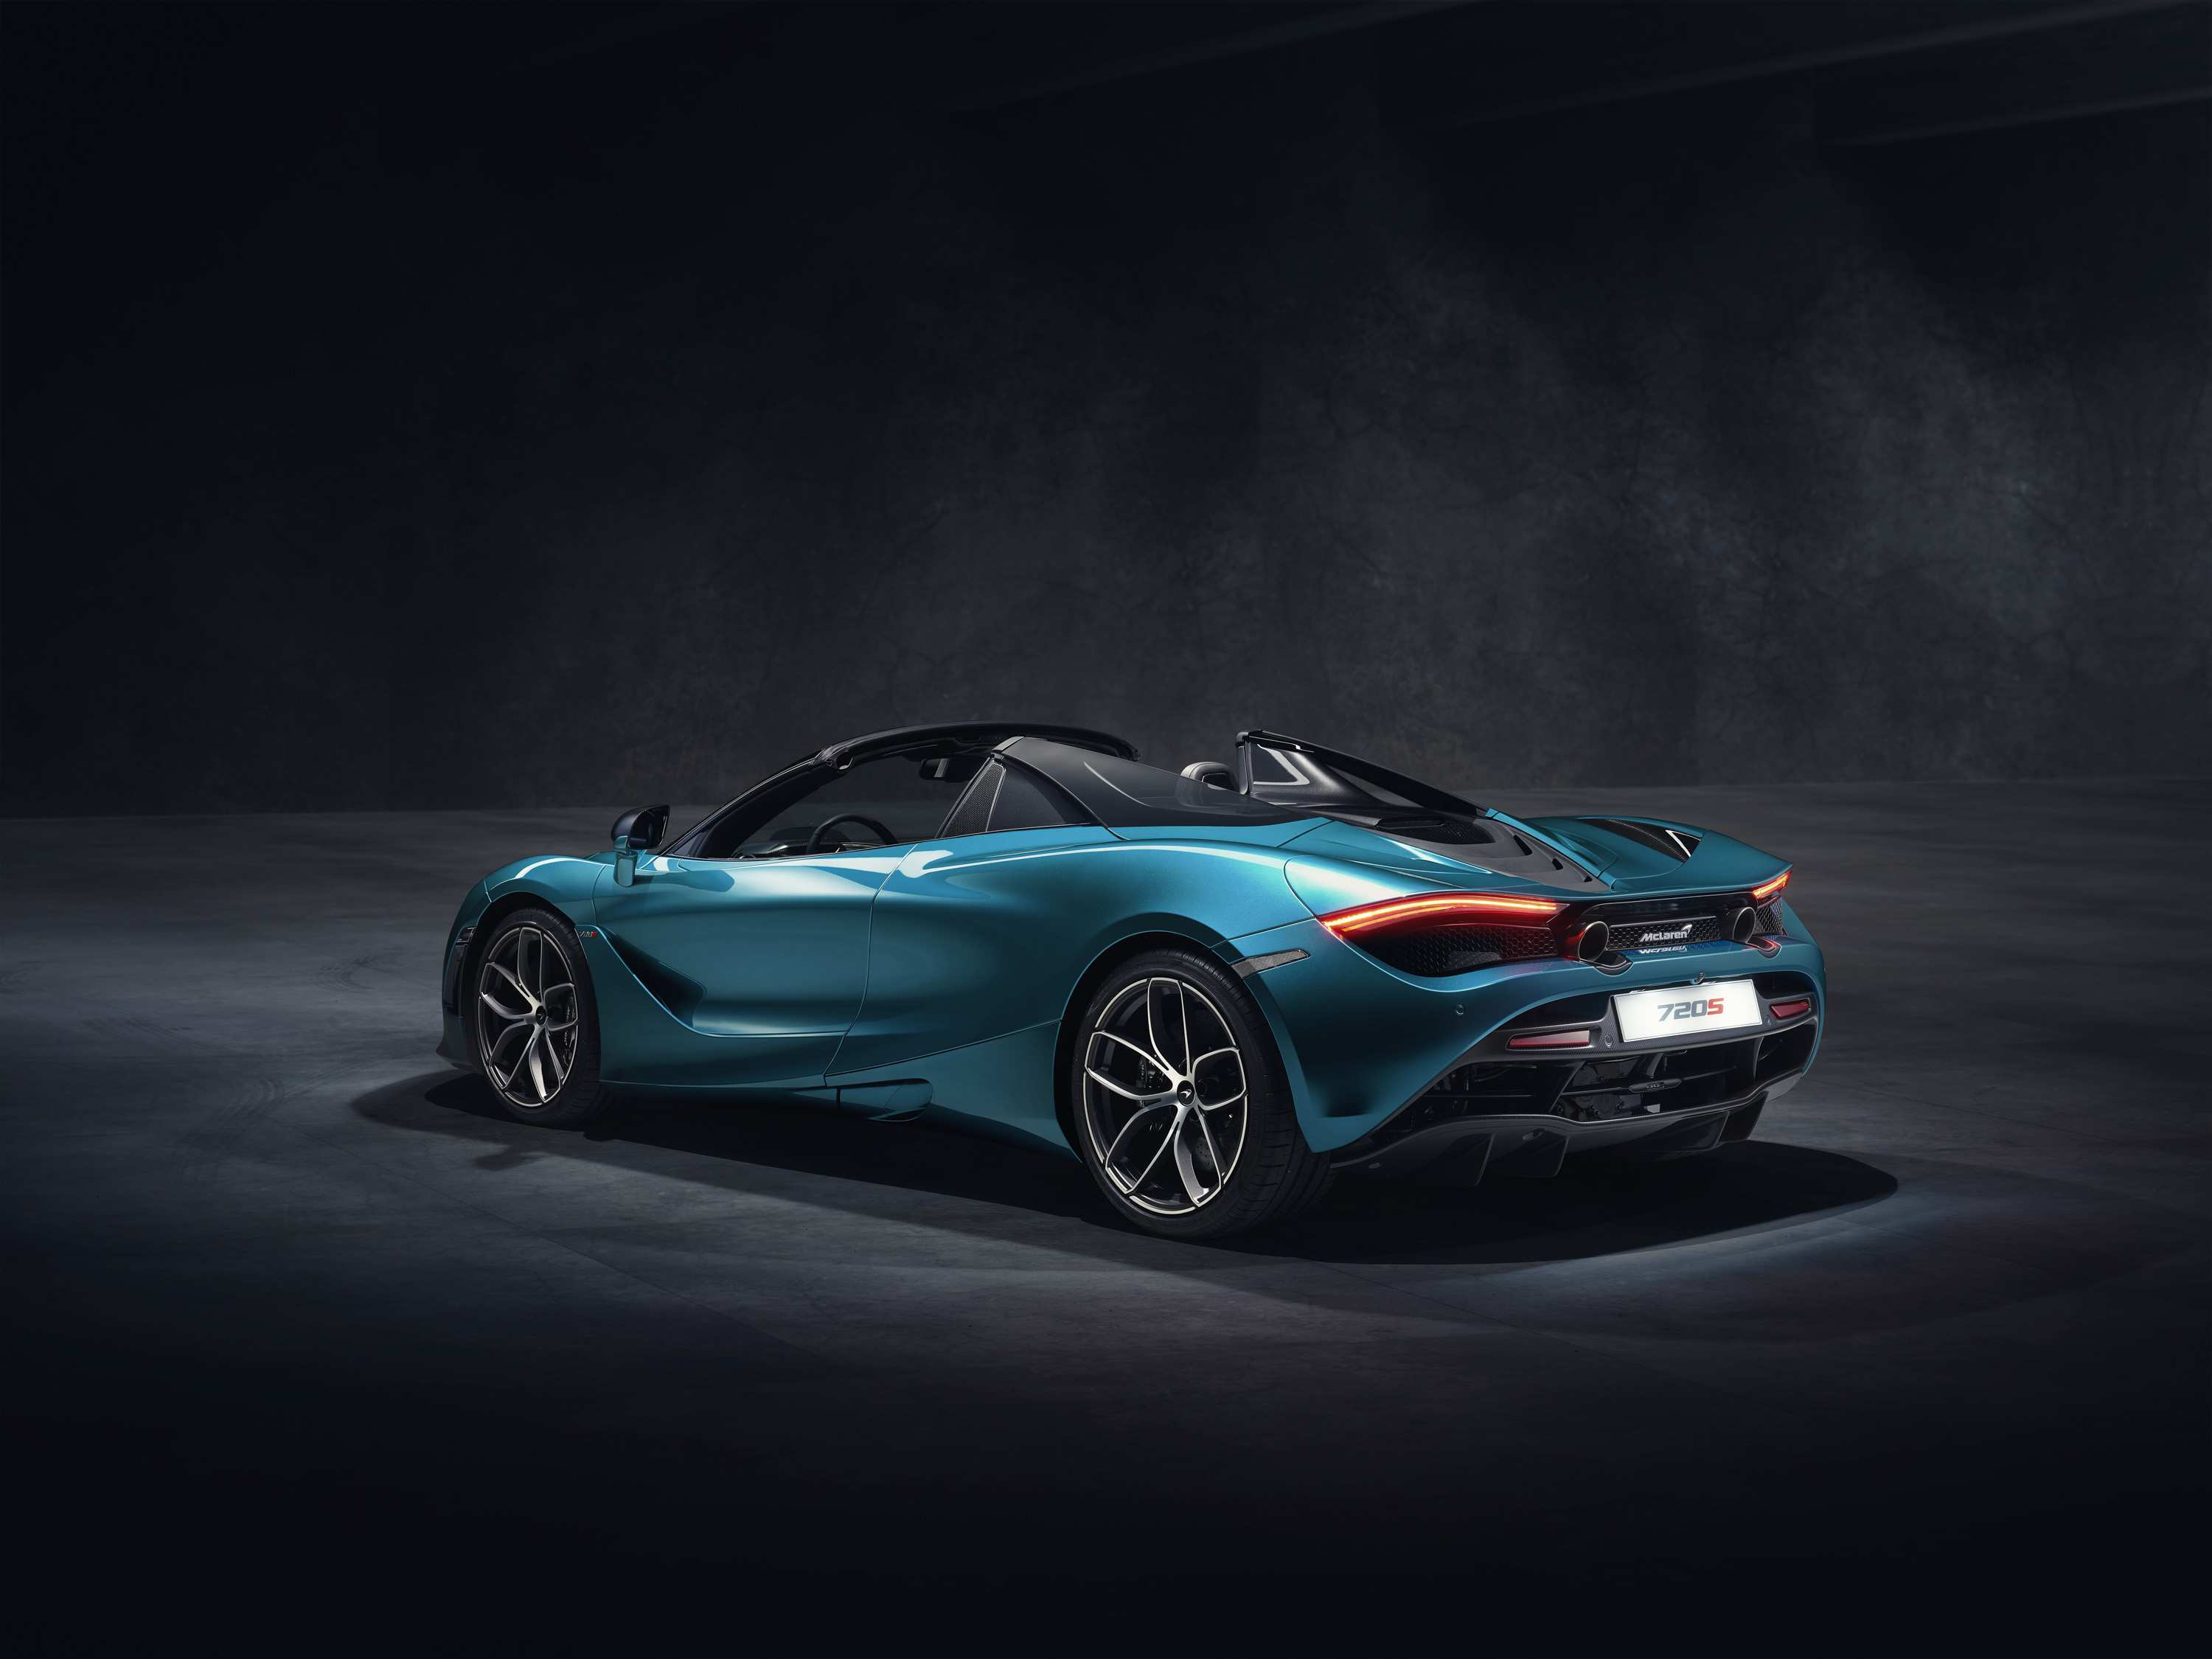 69 Best Review 2019 Mclaren 720S Spider Model with 2019 Mclaren 720S Spider